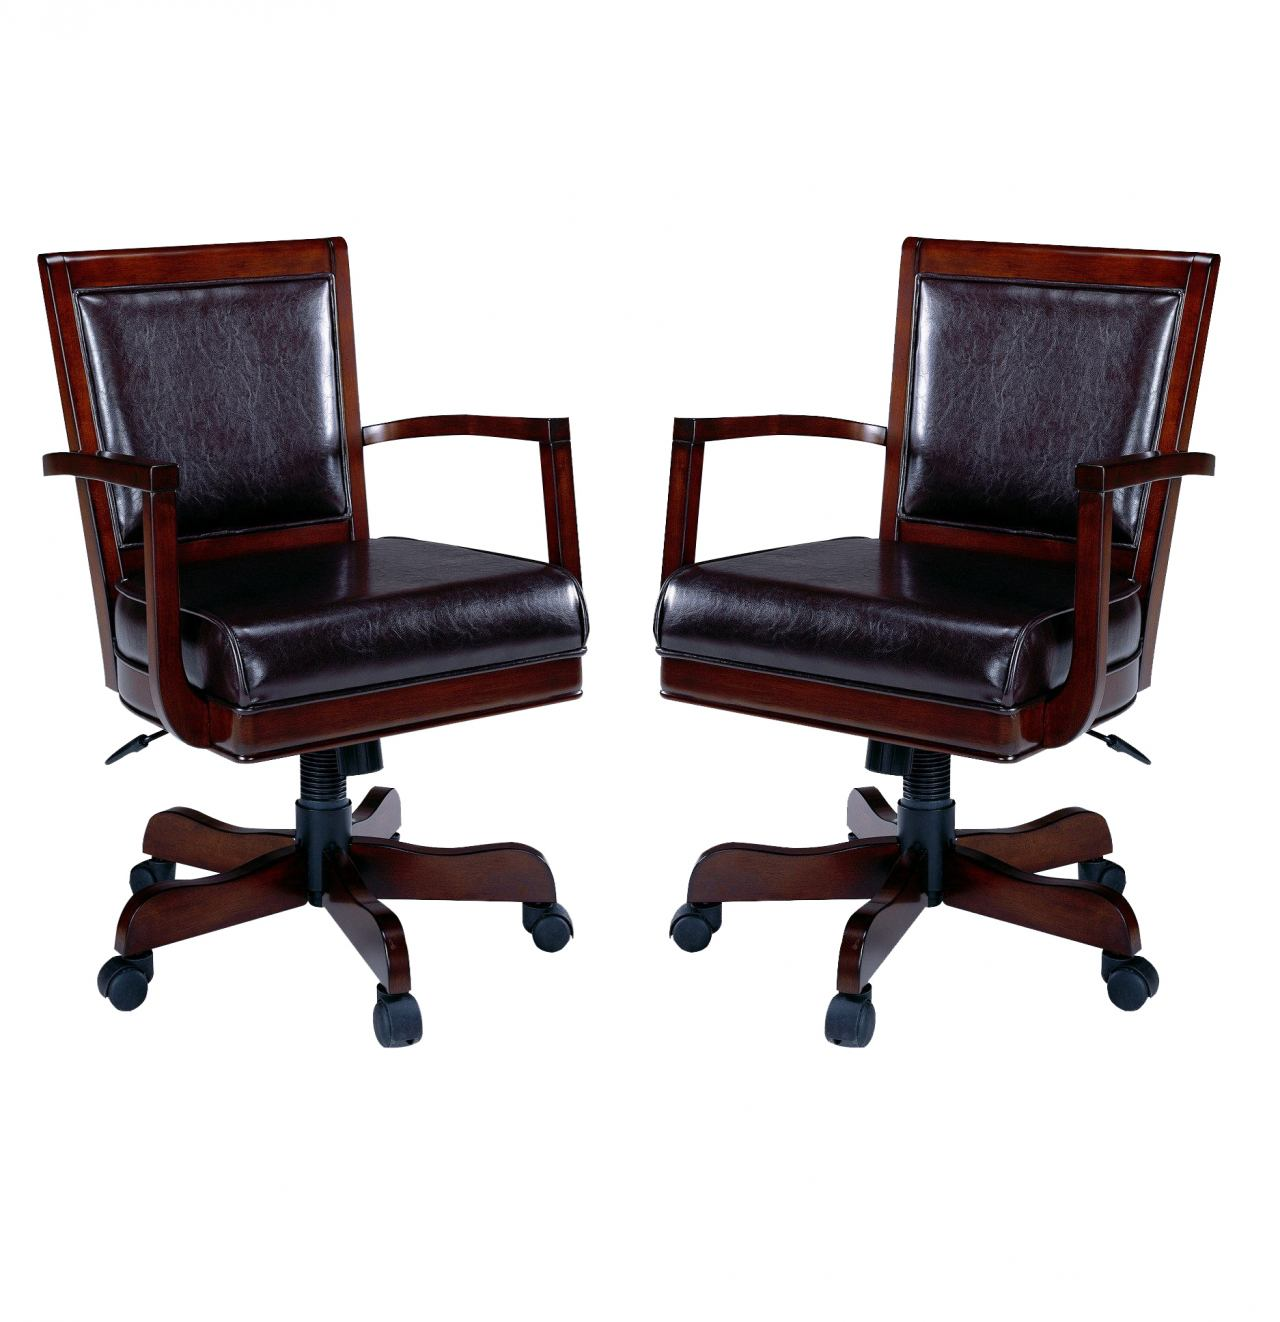 Hillsdale Ambassador Tilt/Swivel Adjustable Height Caster Game Chair in Medium Brown Cherry (Set of 2) 6124-801